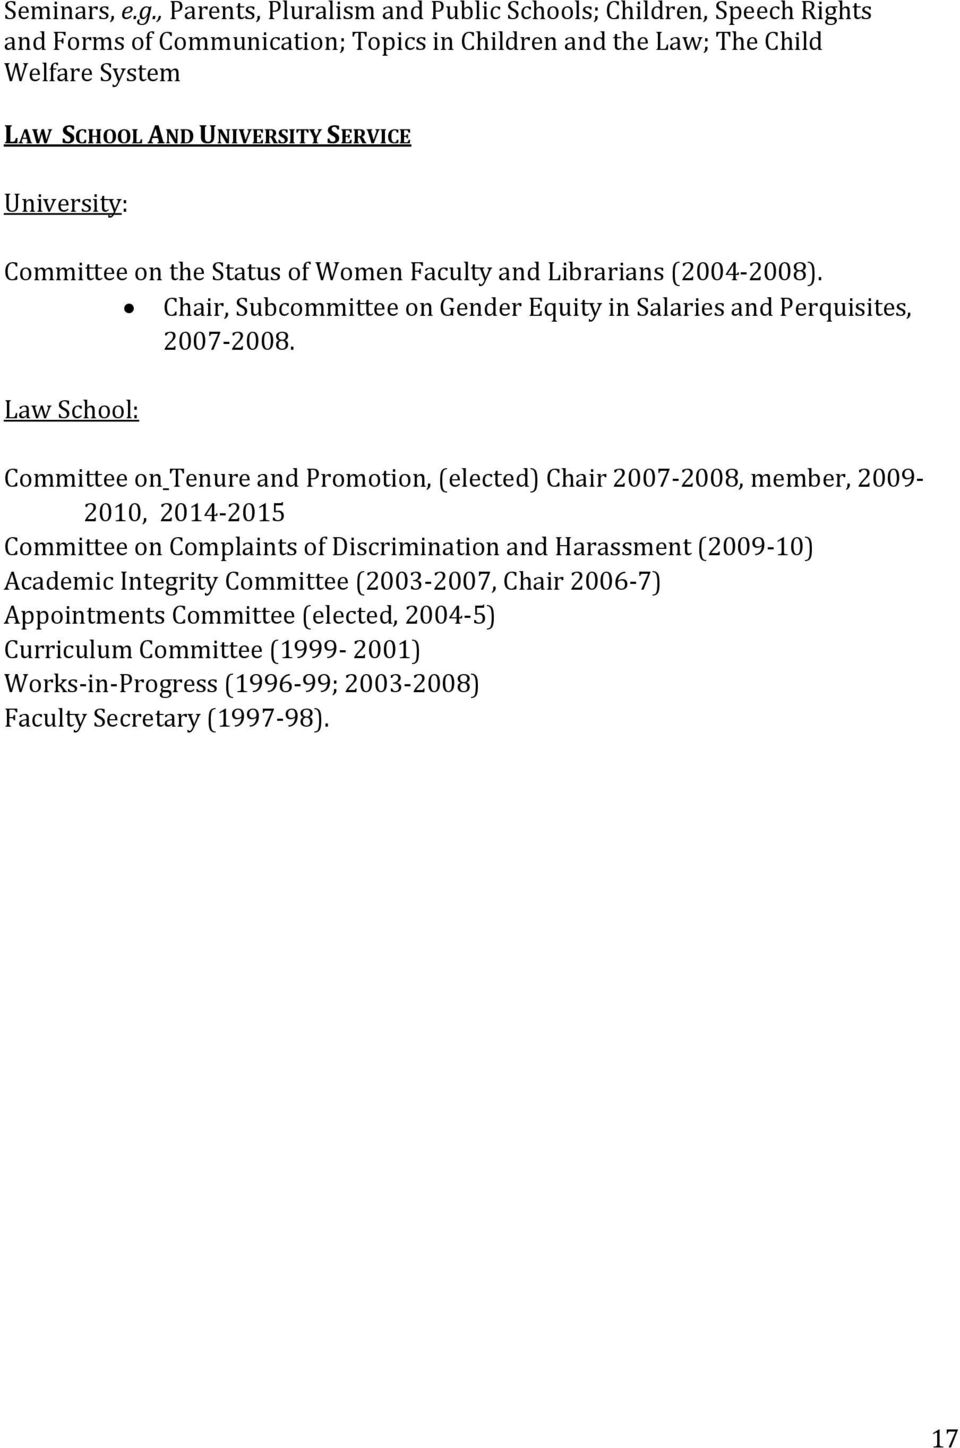 SERVICE University: Committee on the Status of Women Faculty and Librarians (2004-2008). Chair, Subcommittee on Gender Equity in Salaries and Perquisites, 2007-2008.